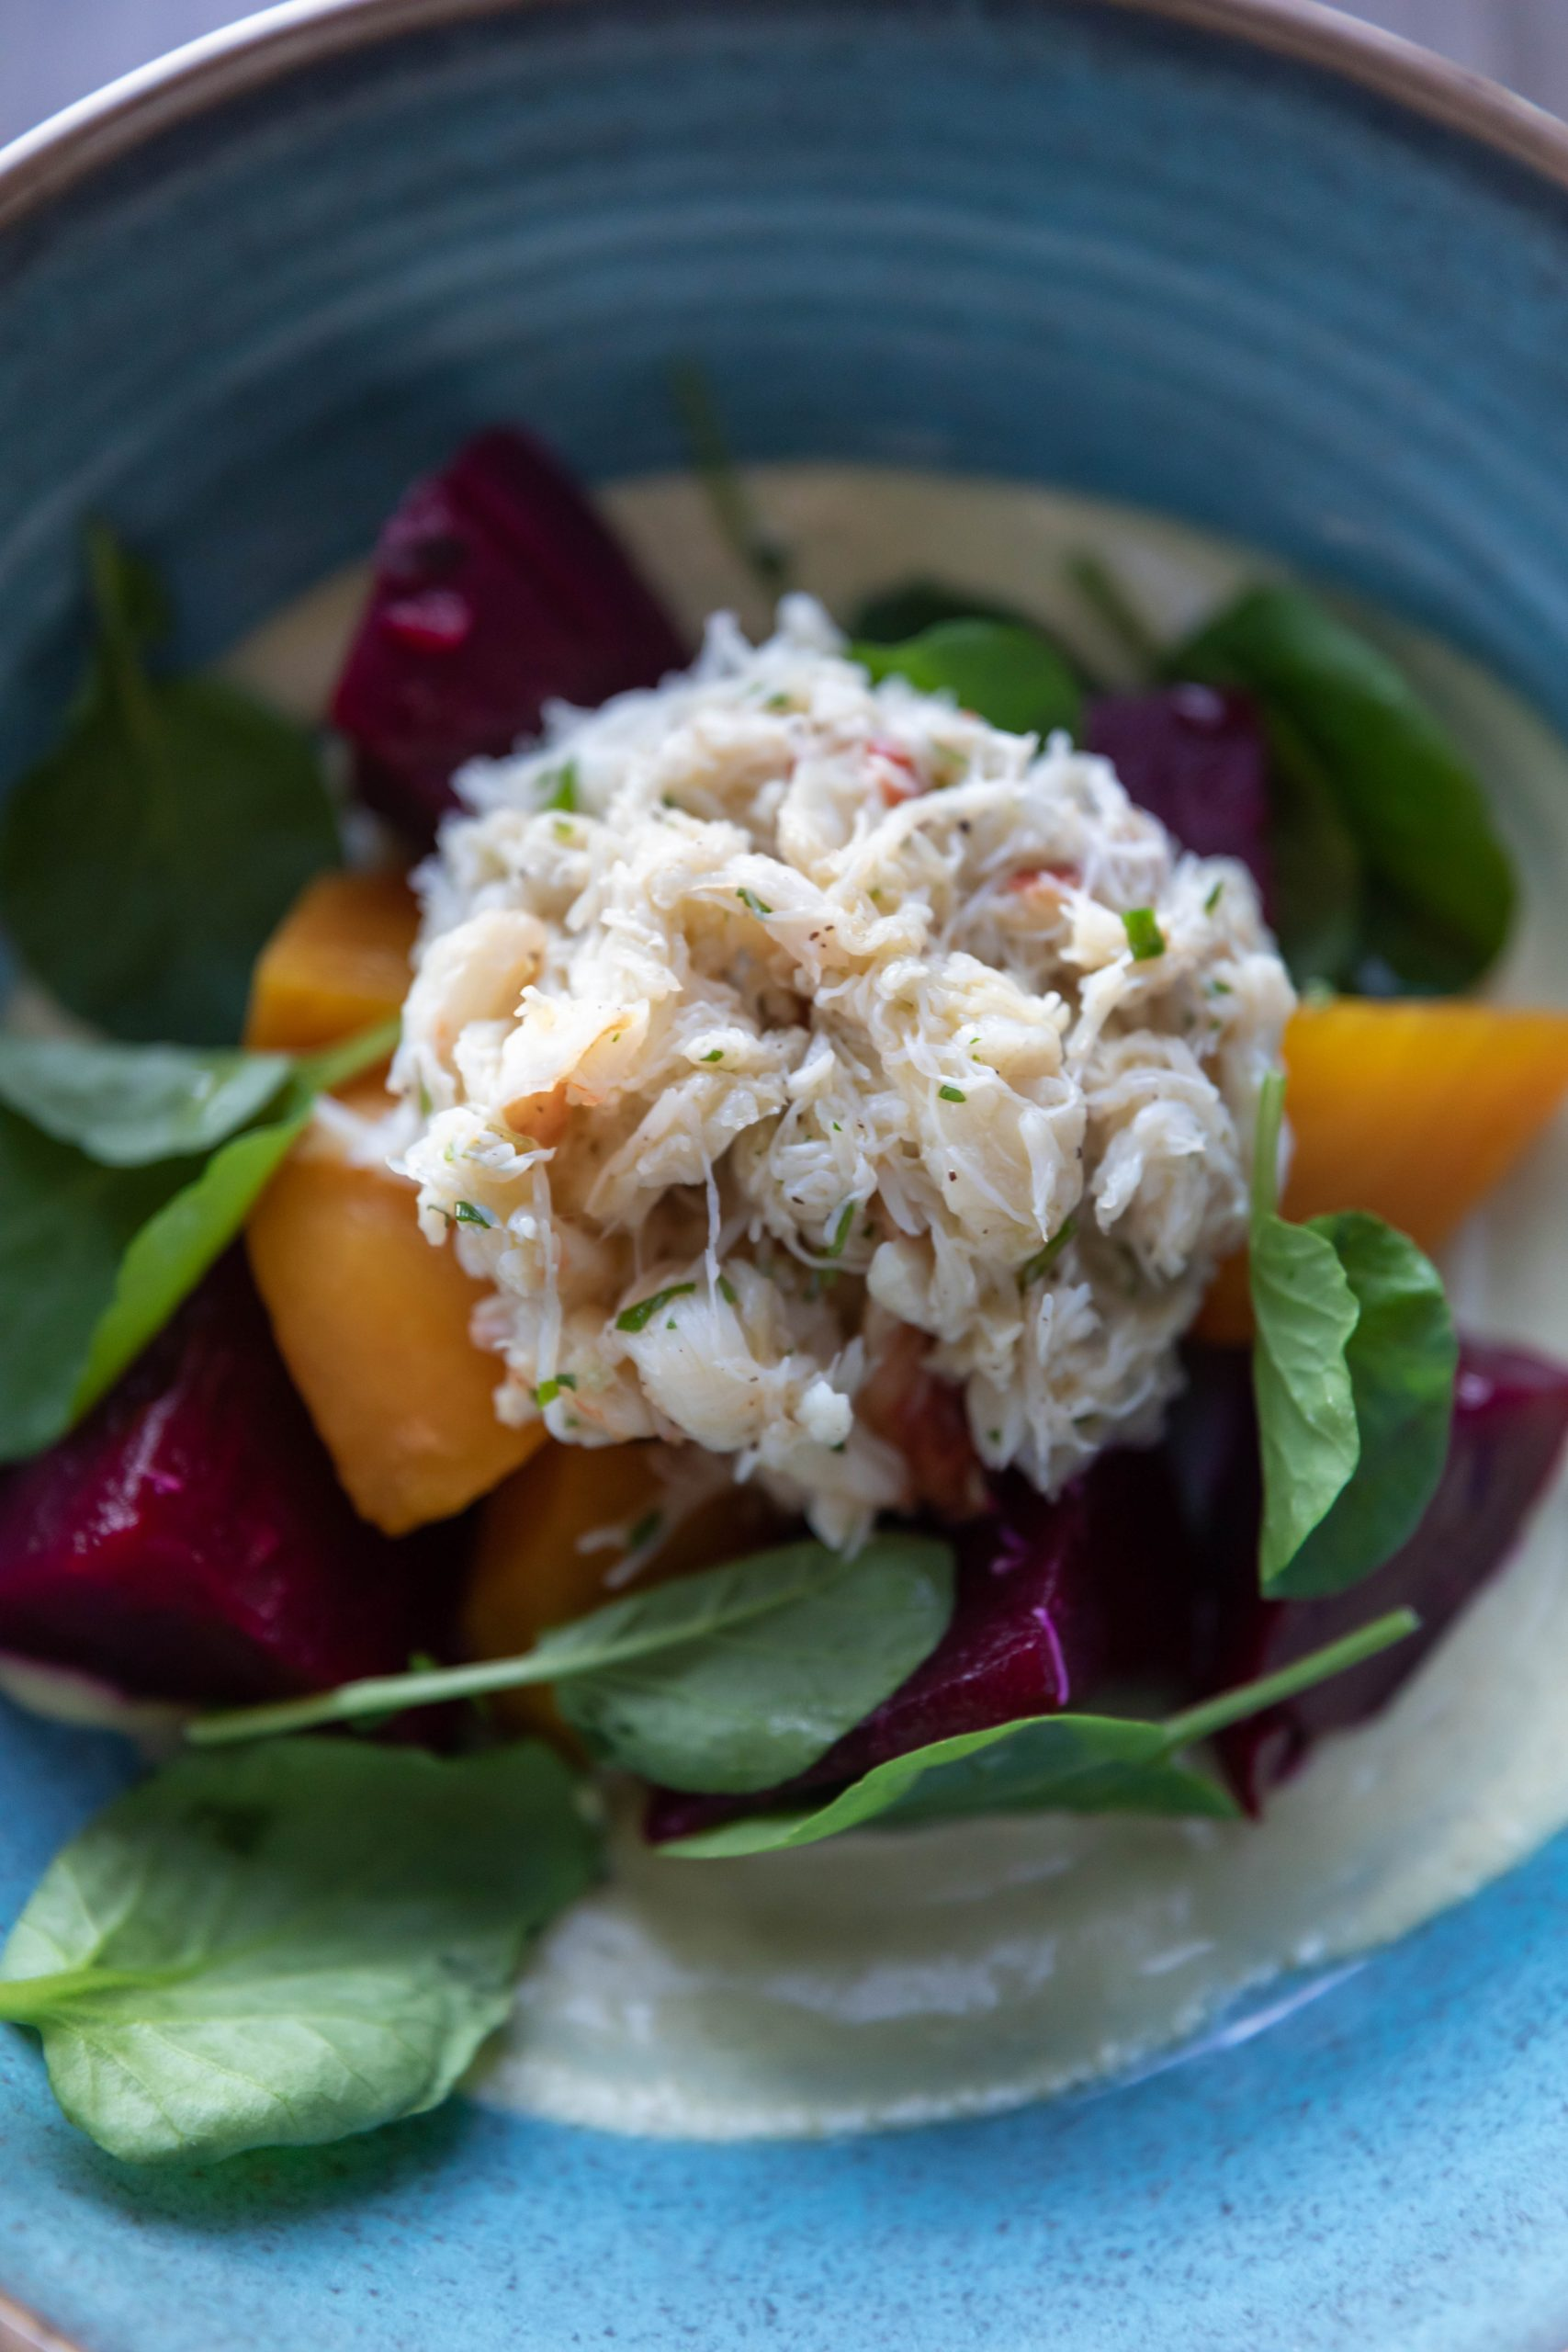 Dungeness crab and Beet Salad at Goldfinch Tavern Rooftop Infinity Pool Bar Four Seasons Hotel Seattle Washington by Annie Fairfax